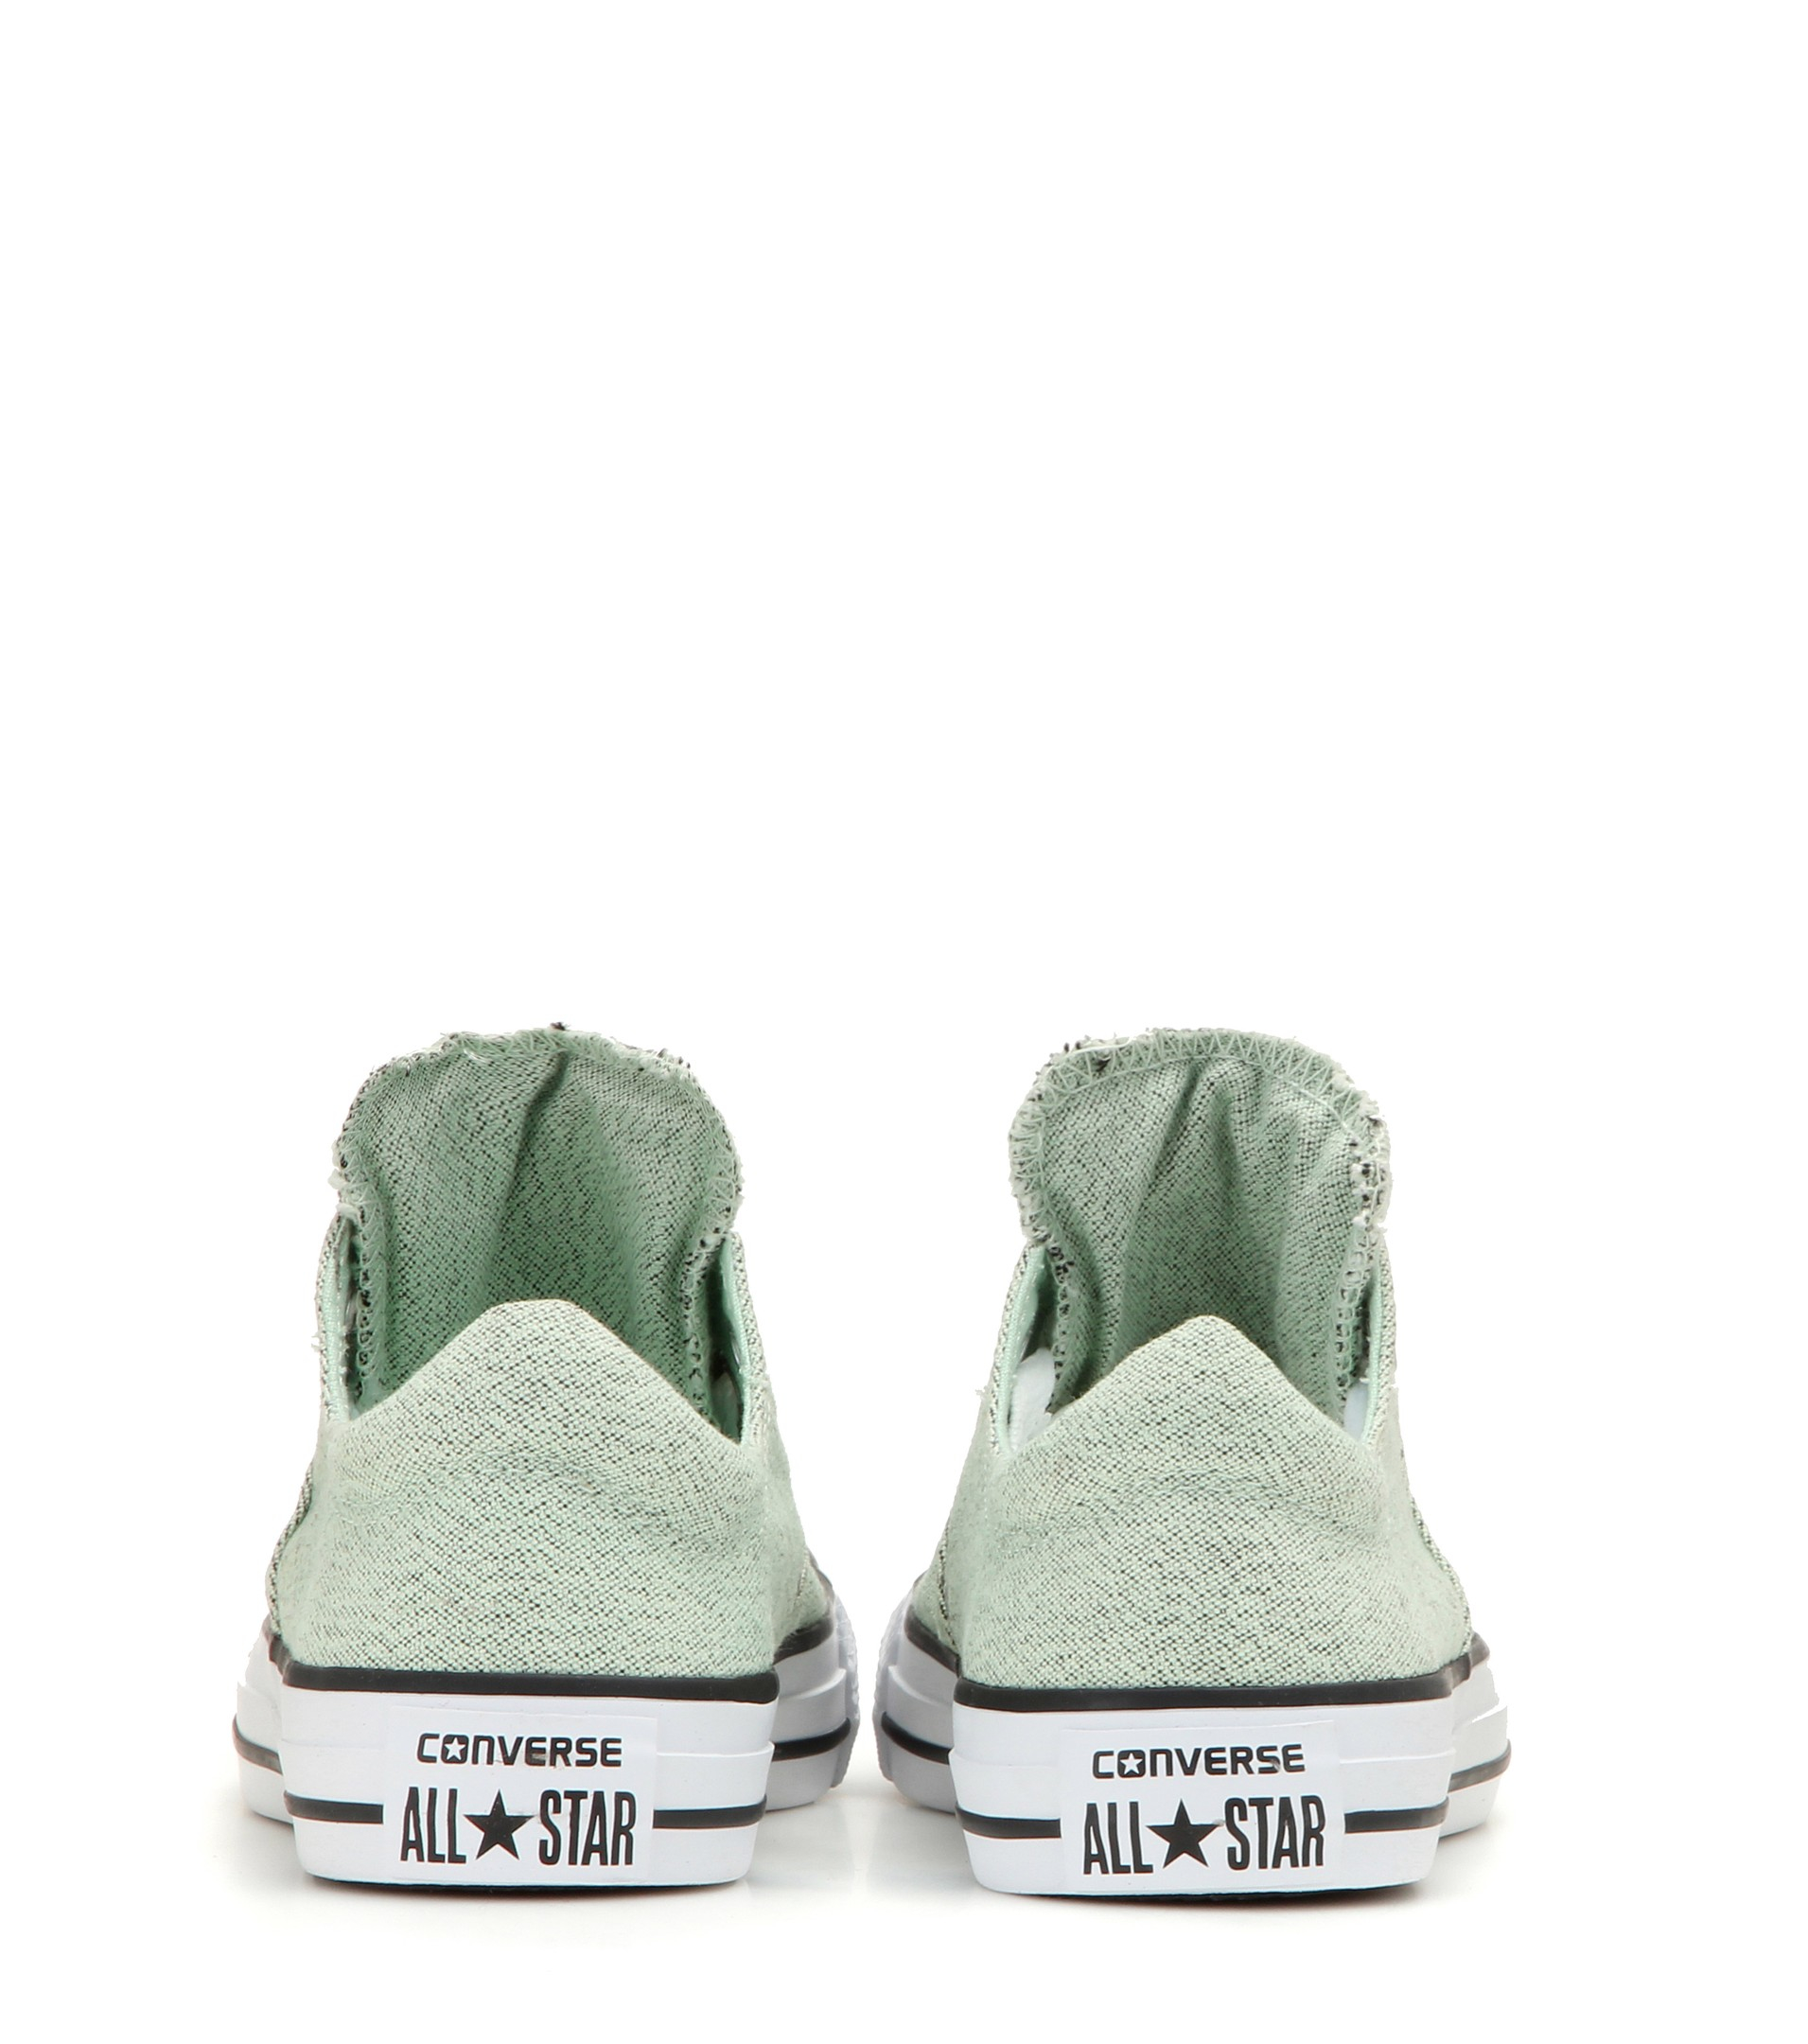 cdff956a7c6e Lyst - Converse Chuck Taylor All Star Madison Sneakers in Green